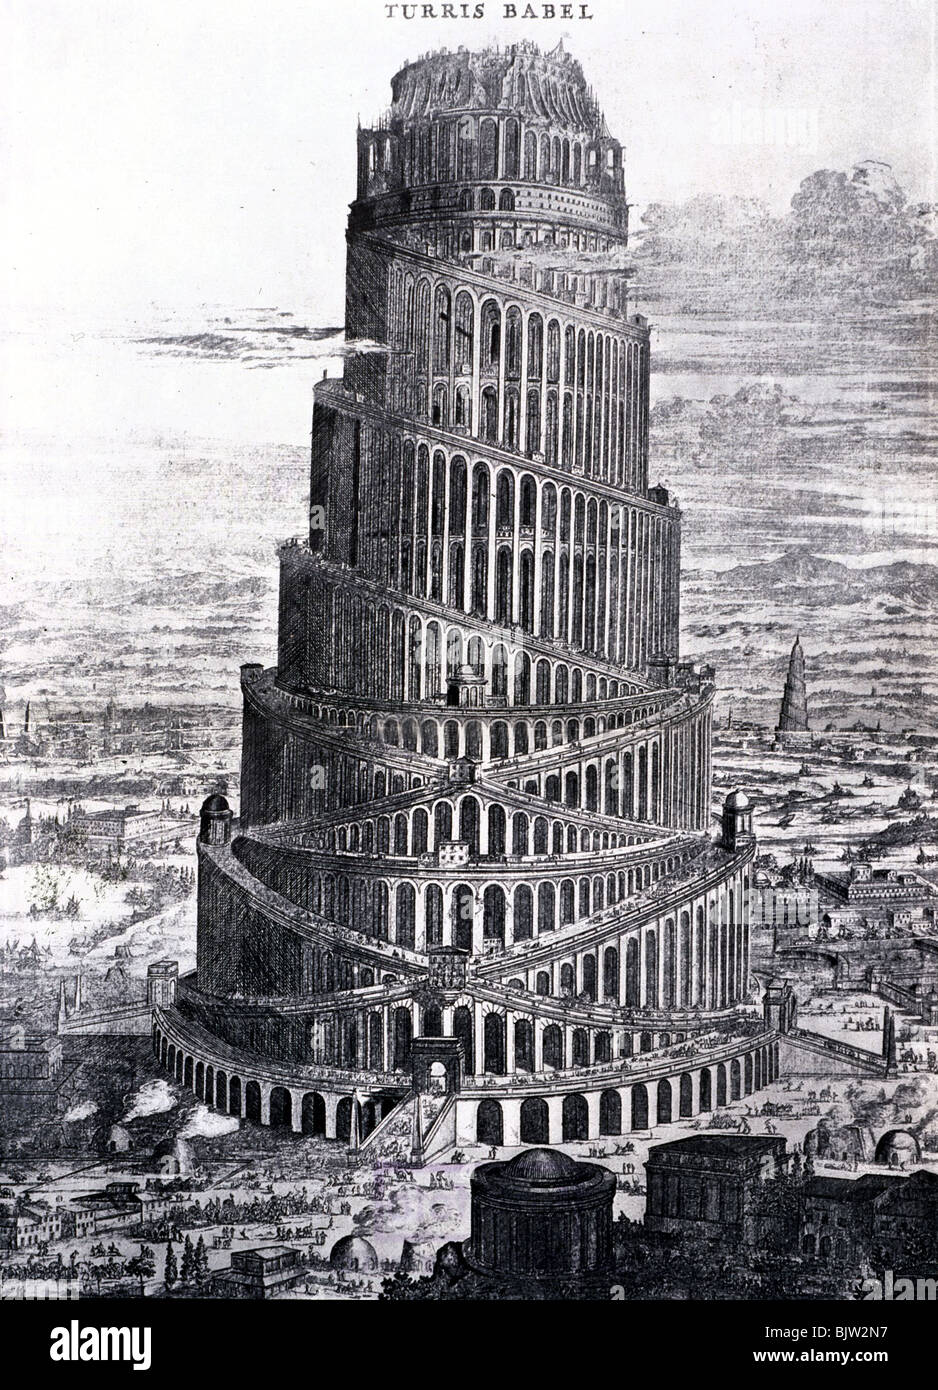 ancient world, Babylon, Tower of Babel, copper engraving, circa 17th / 18th century, historic, historical, towers, - Stock Image